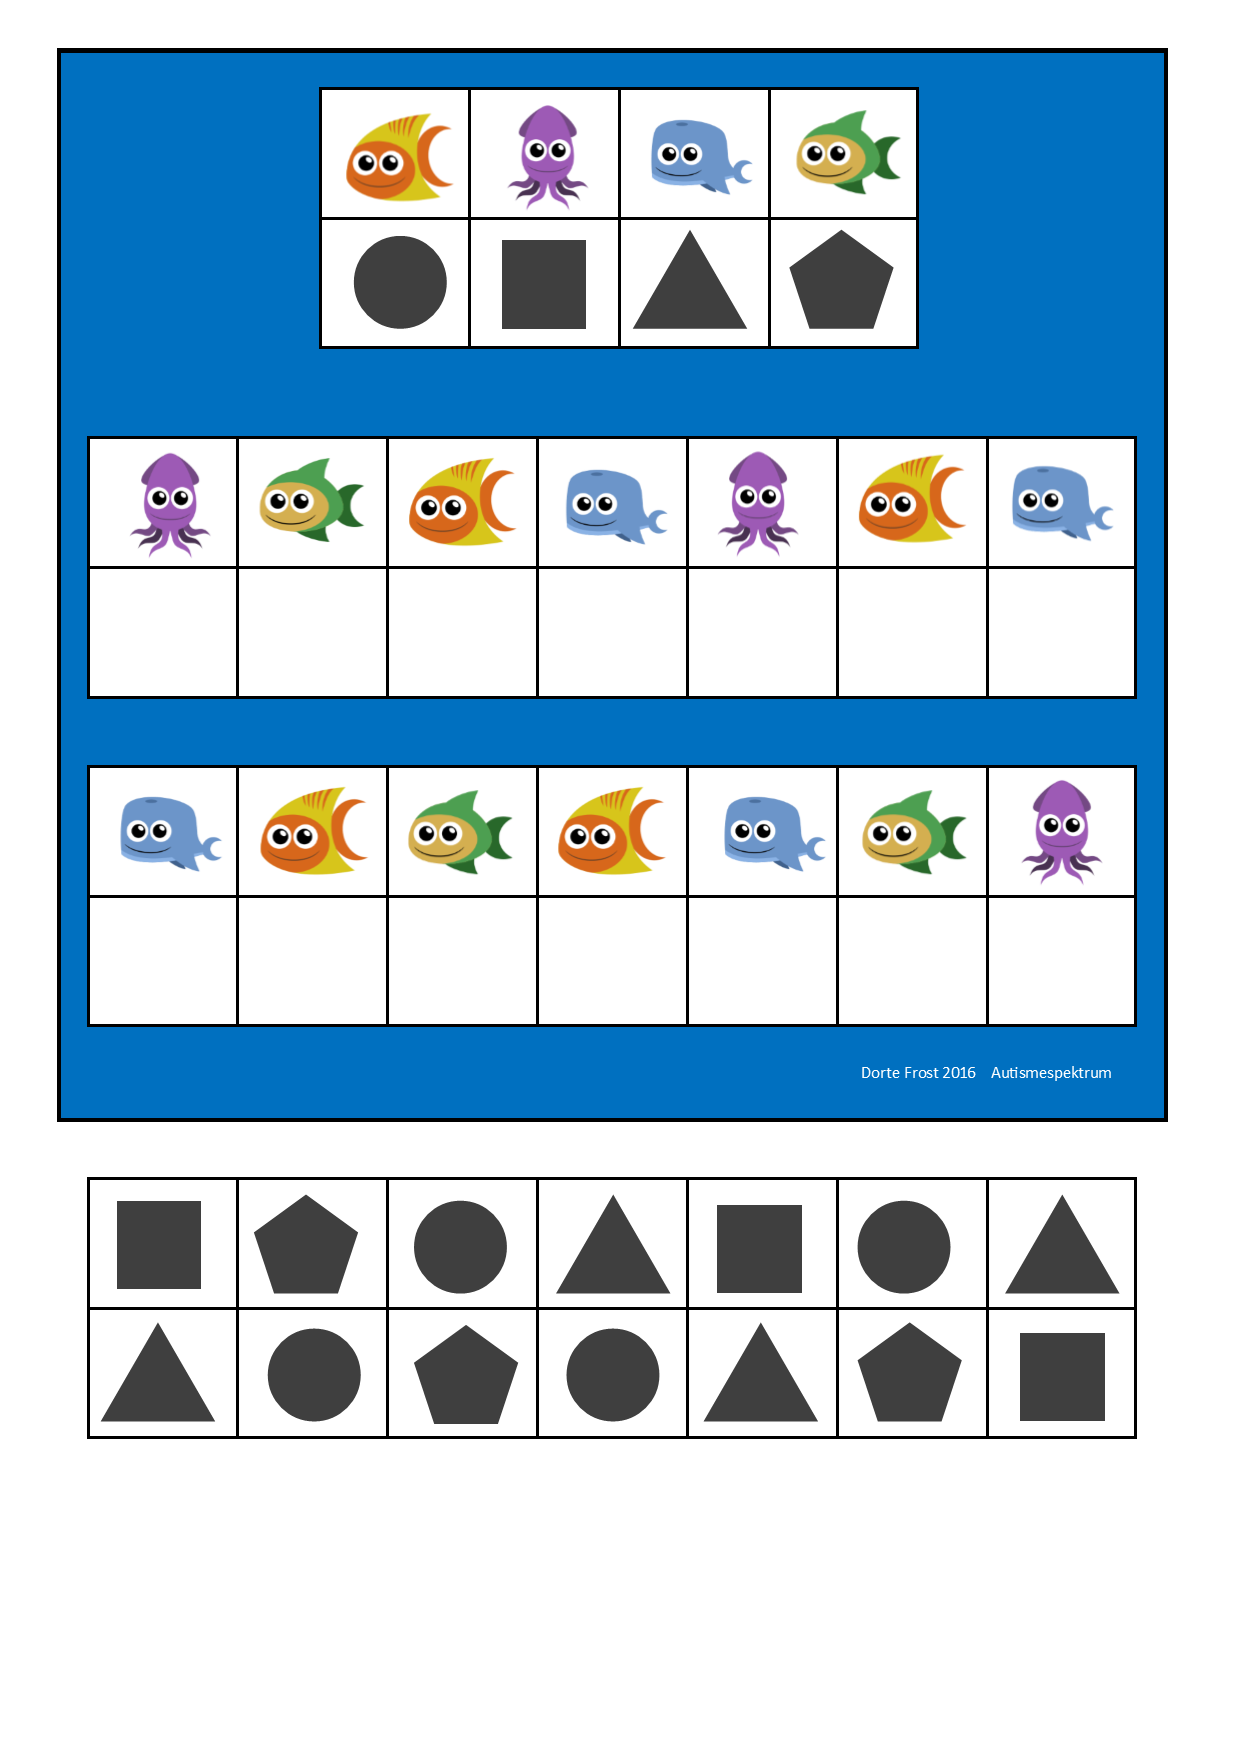 Board And Tiles For The Sea Animal Visual Perception Game By Autismespektrum